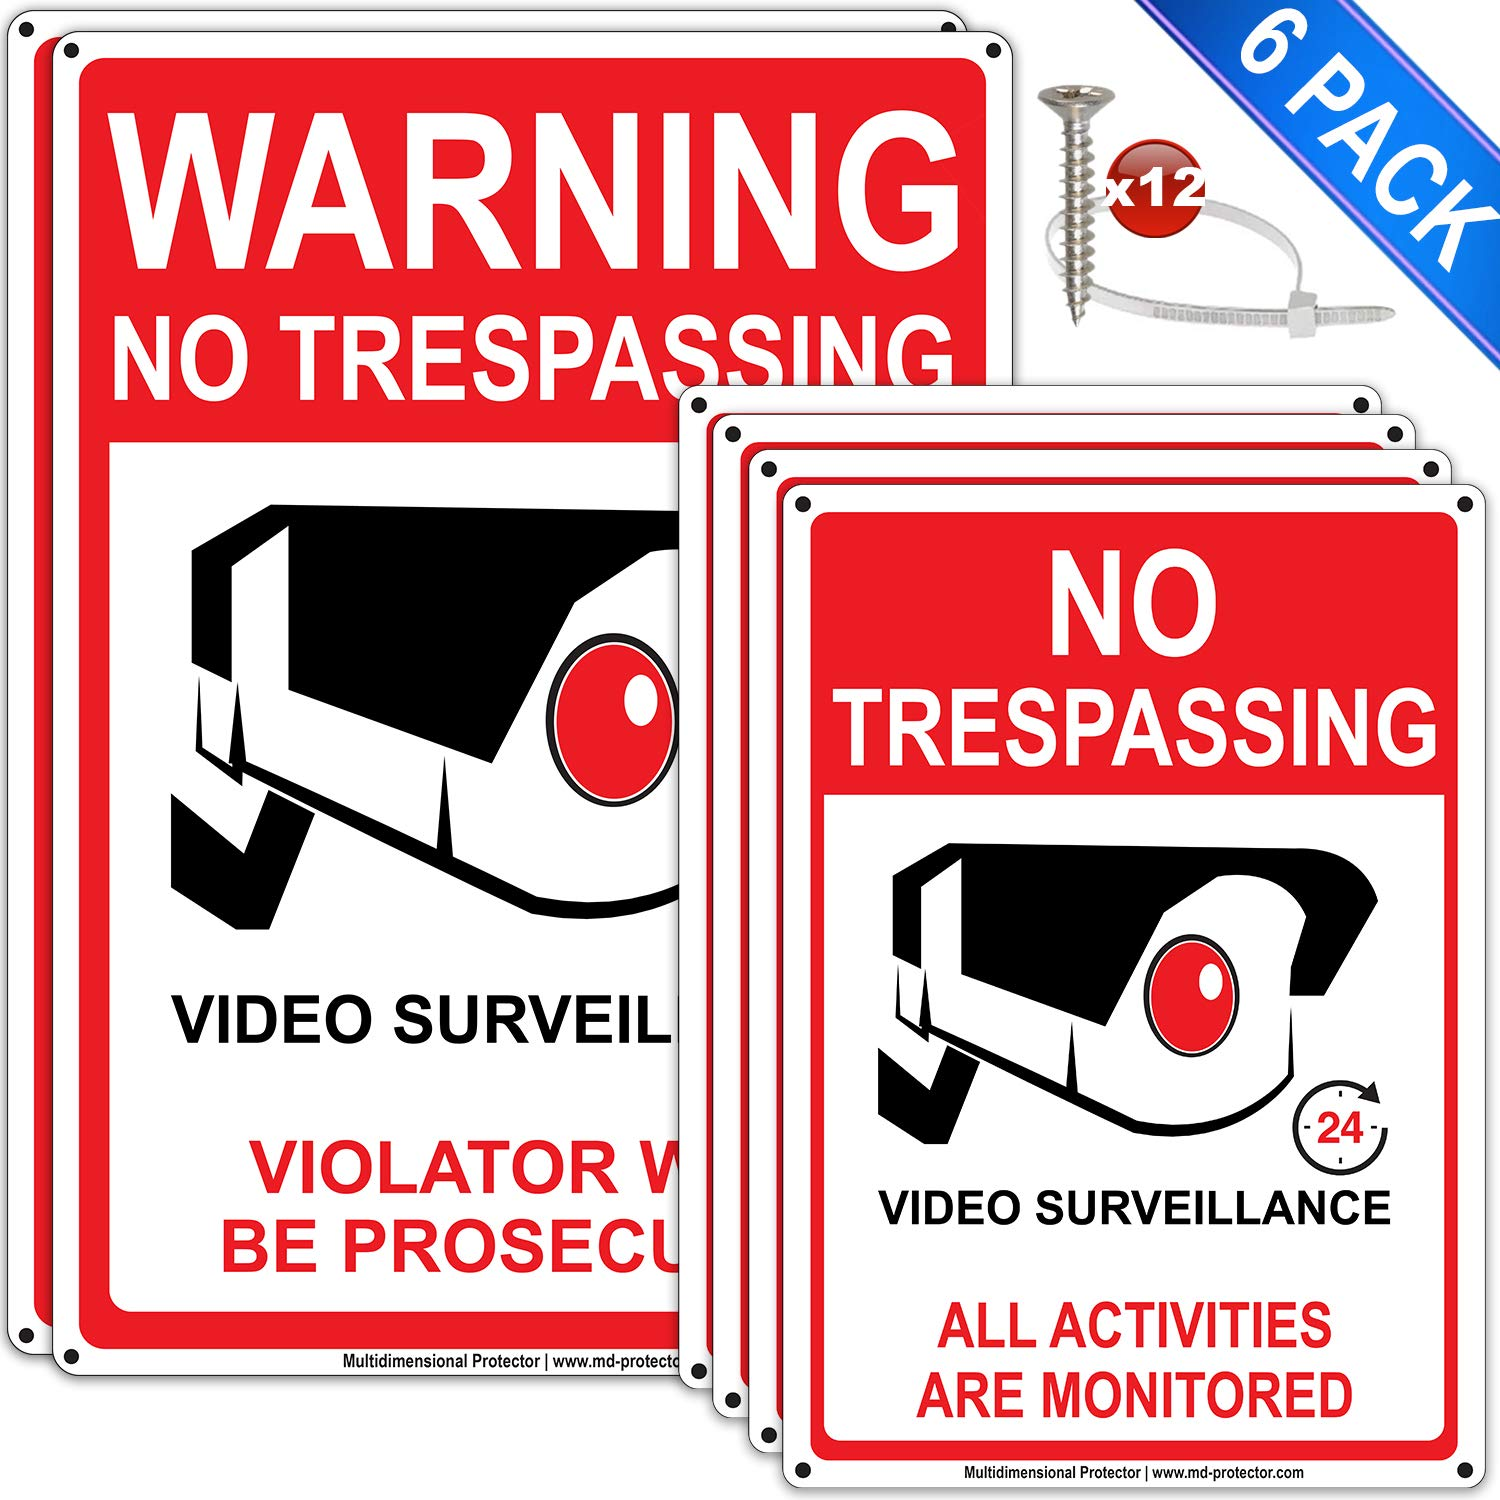 6Packs No Trespassing Signs Private Property 7''x10'' 4pcs, 24 Hour Video Surveillance Sign Outdoor Indoor 10''x14'' 2pcs .040 Reflective Aluminum, Anti UV Security Camera Sign with Screws and Zip Ties by MD-Protector